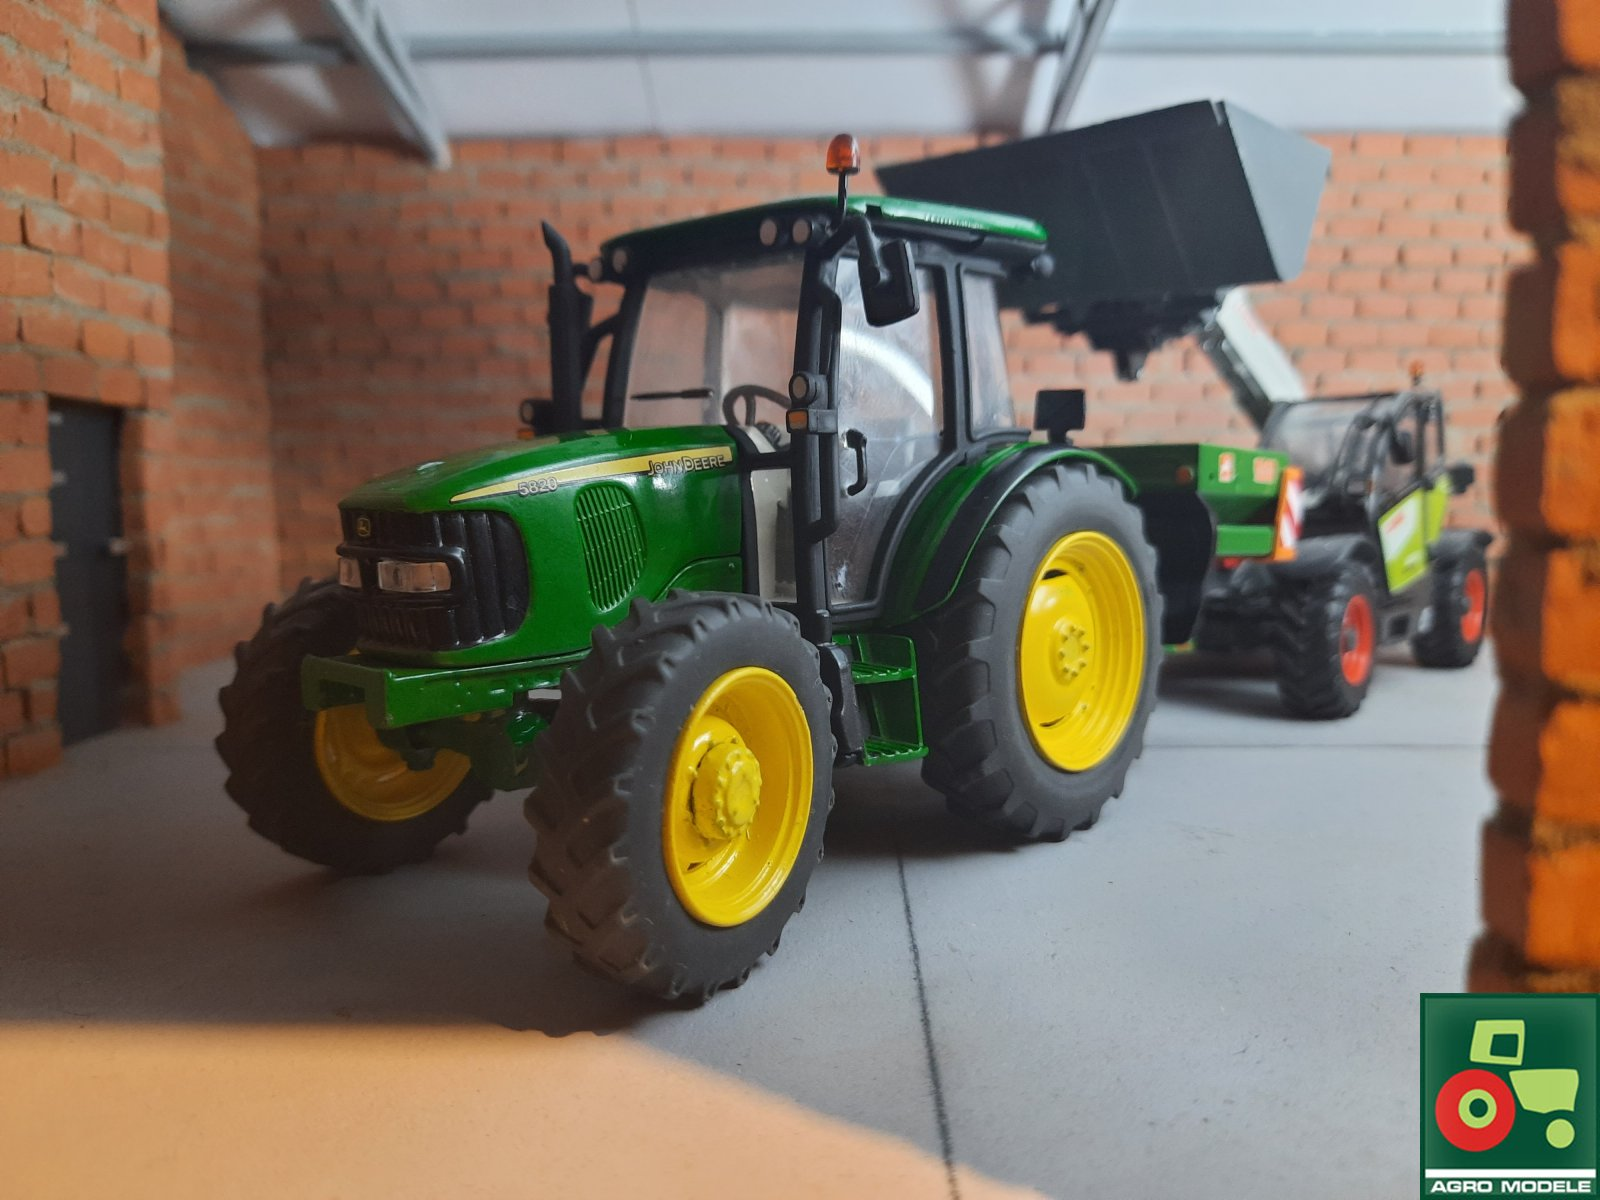 JD 5820 & Amazone ZA-M & Claas Scorpion 6030cp